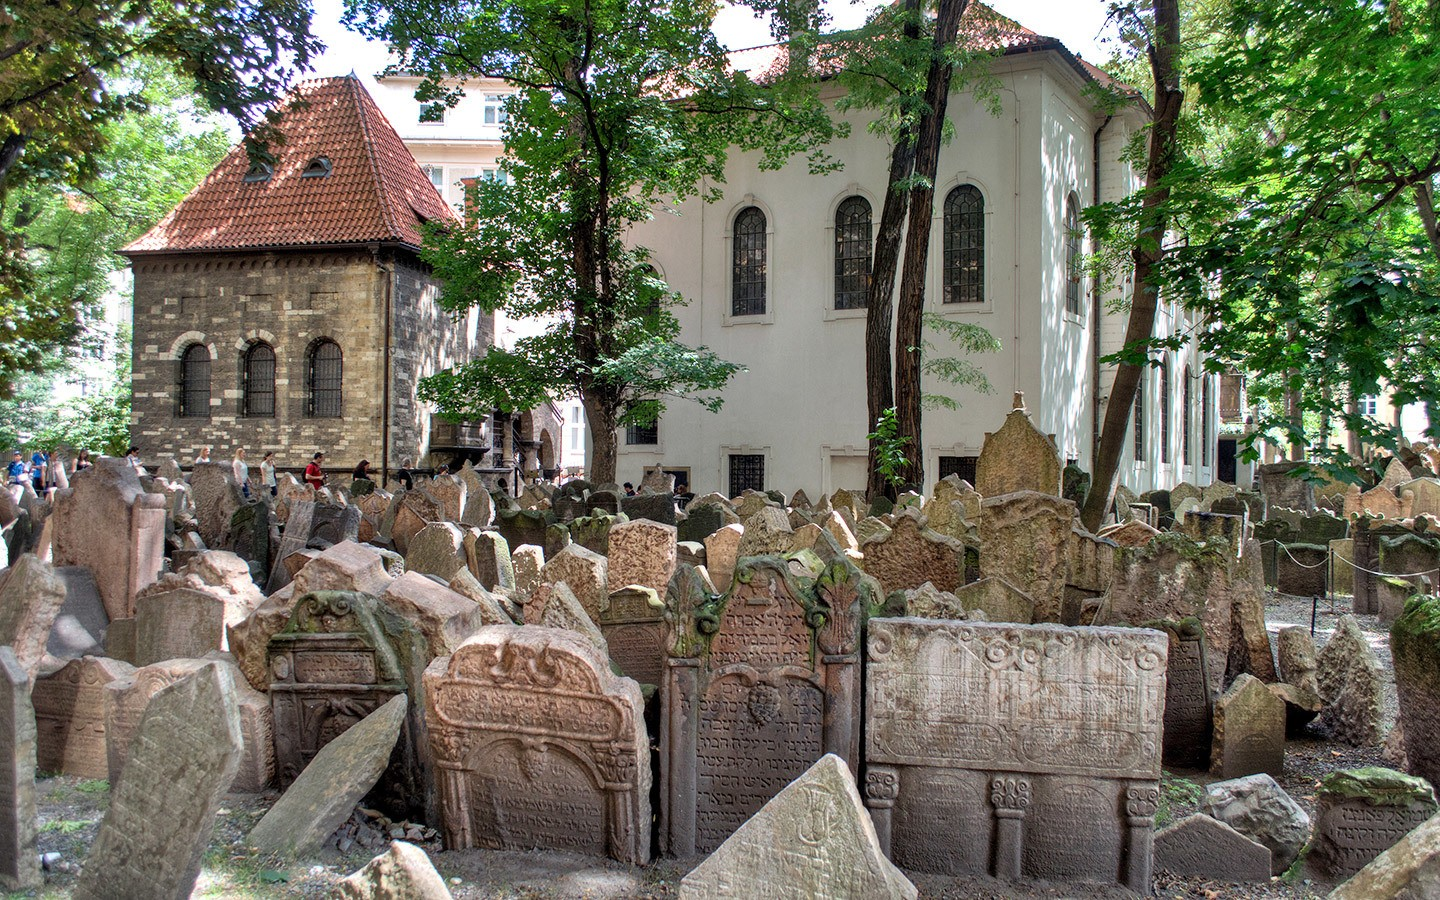 Gravestones in the Old Jewish Cemetery, Prague